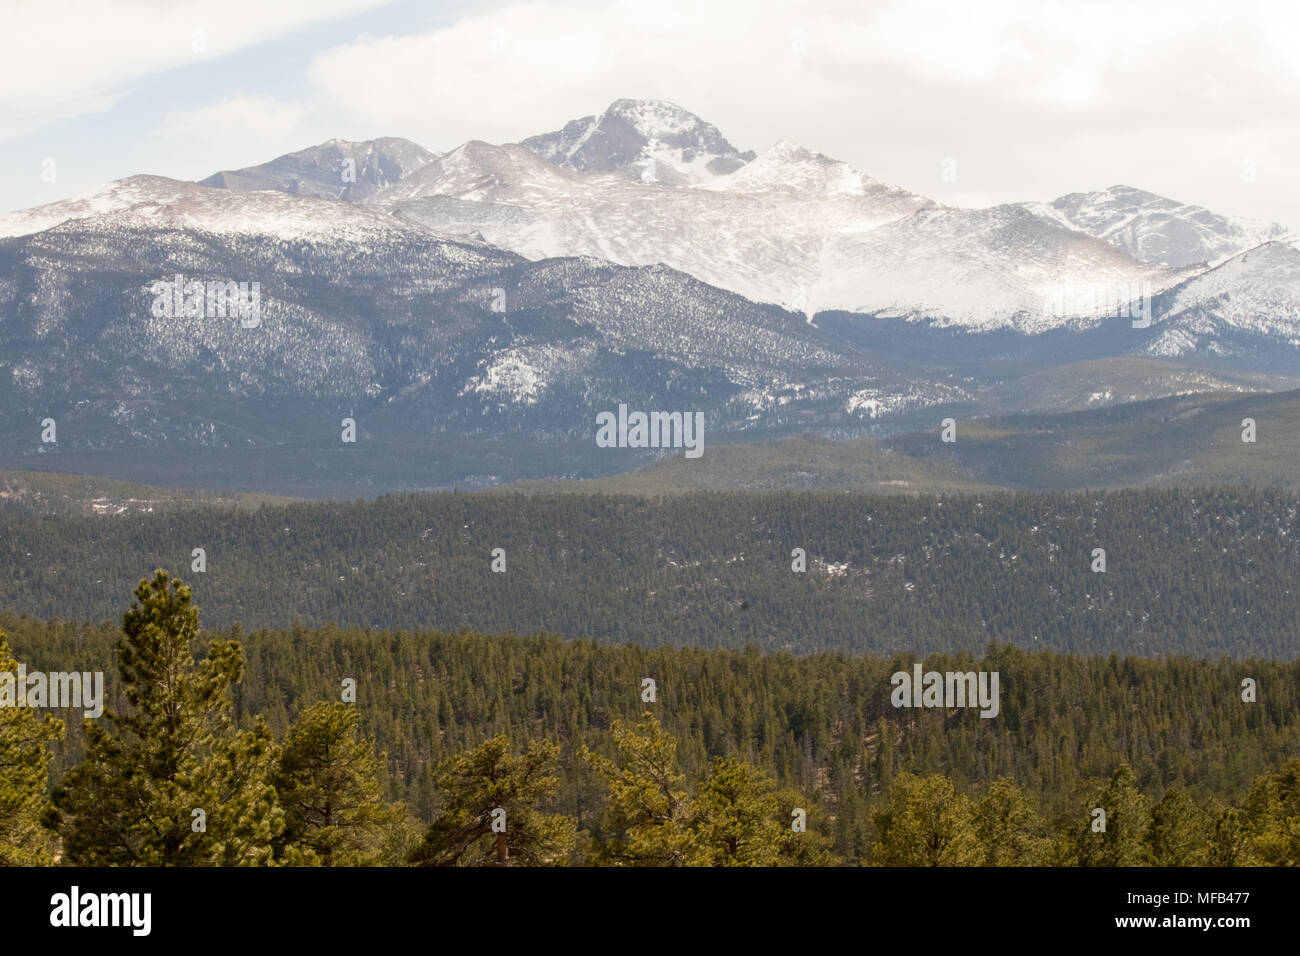 Scenic view of rockies - Stock Image